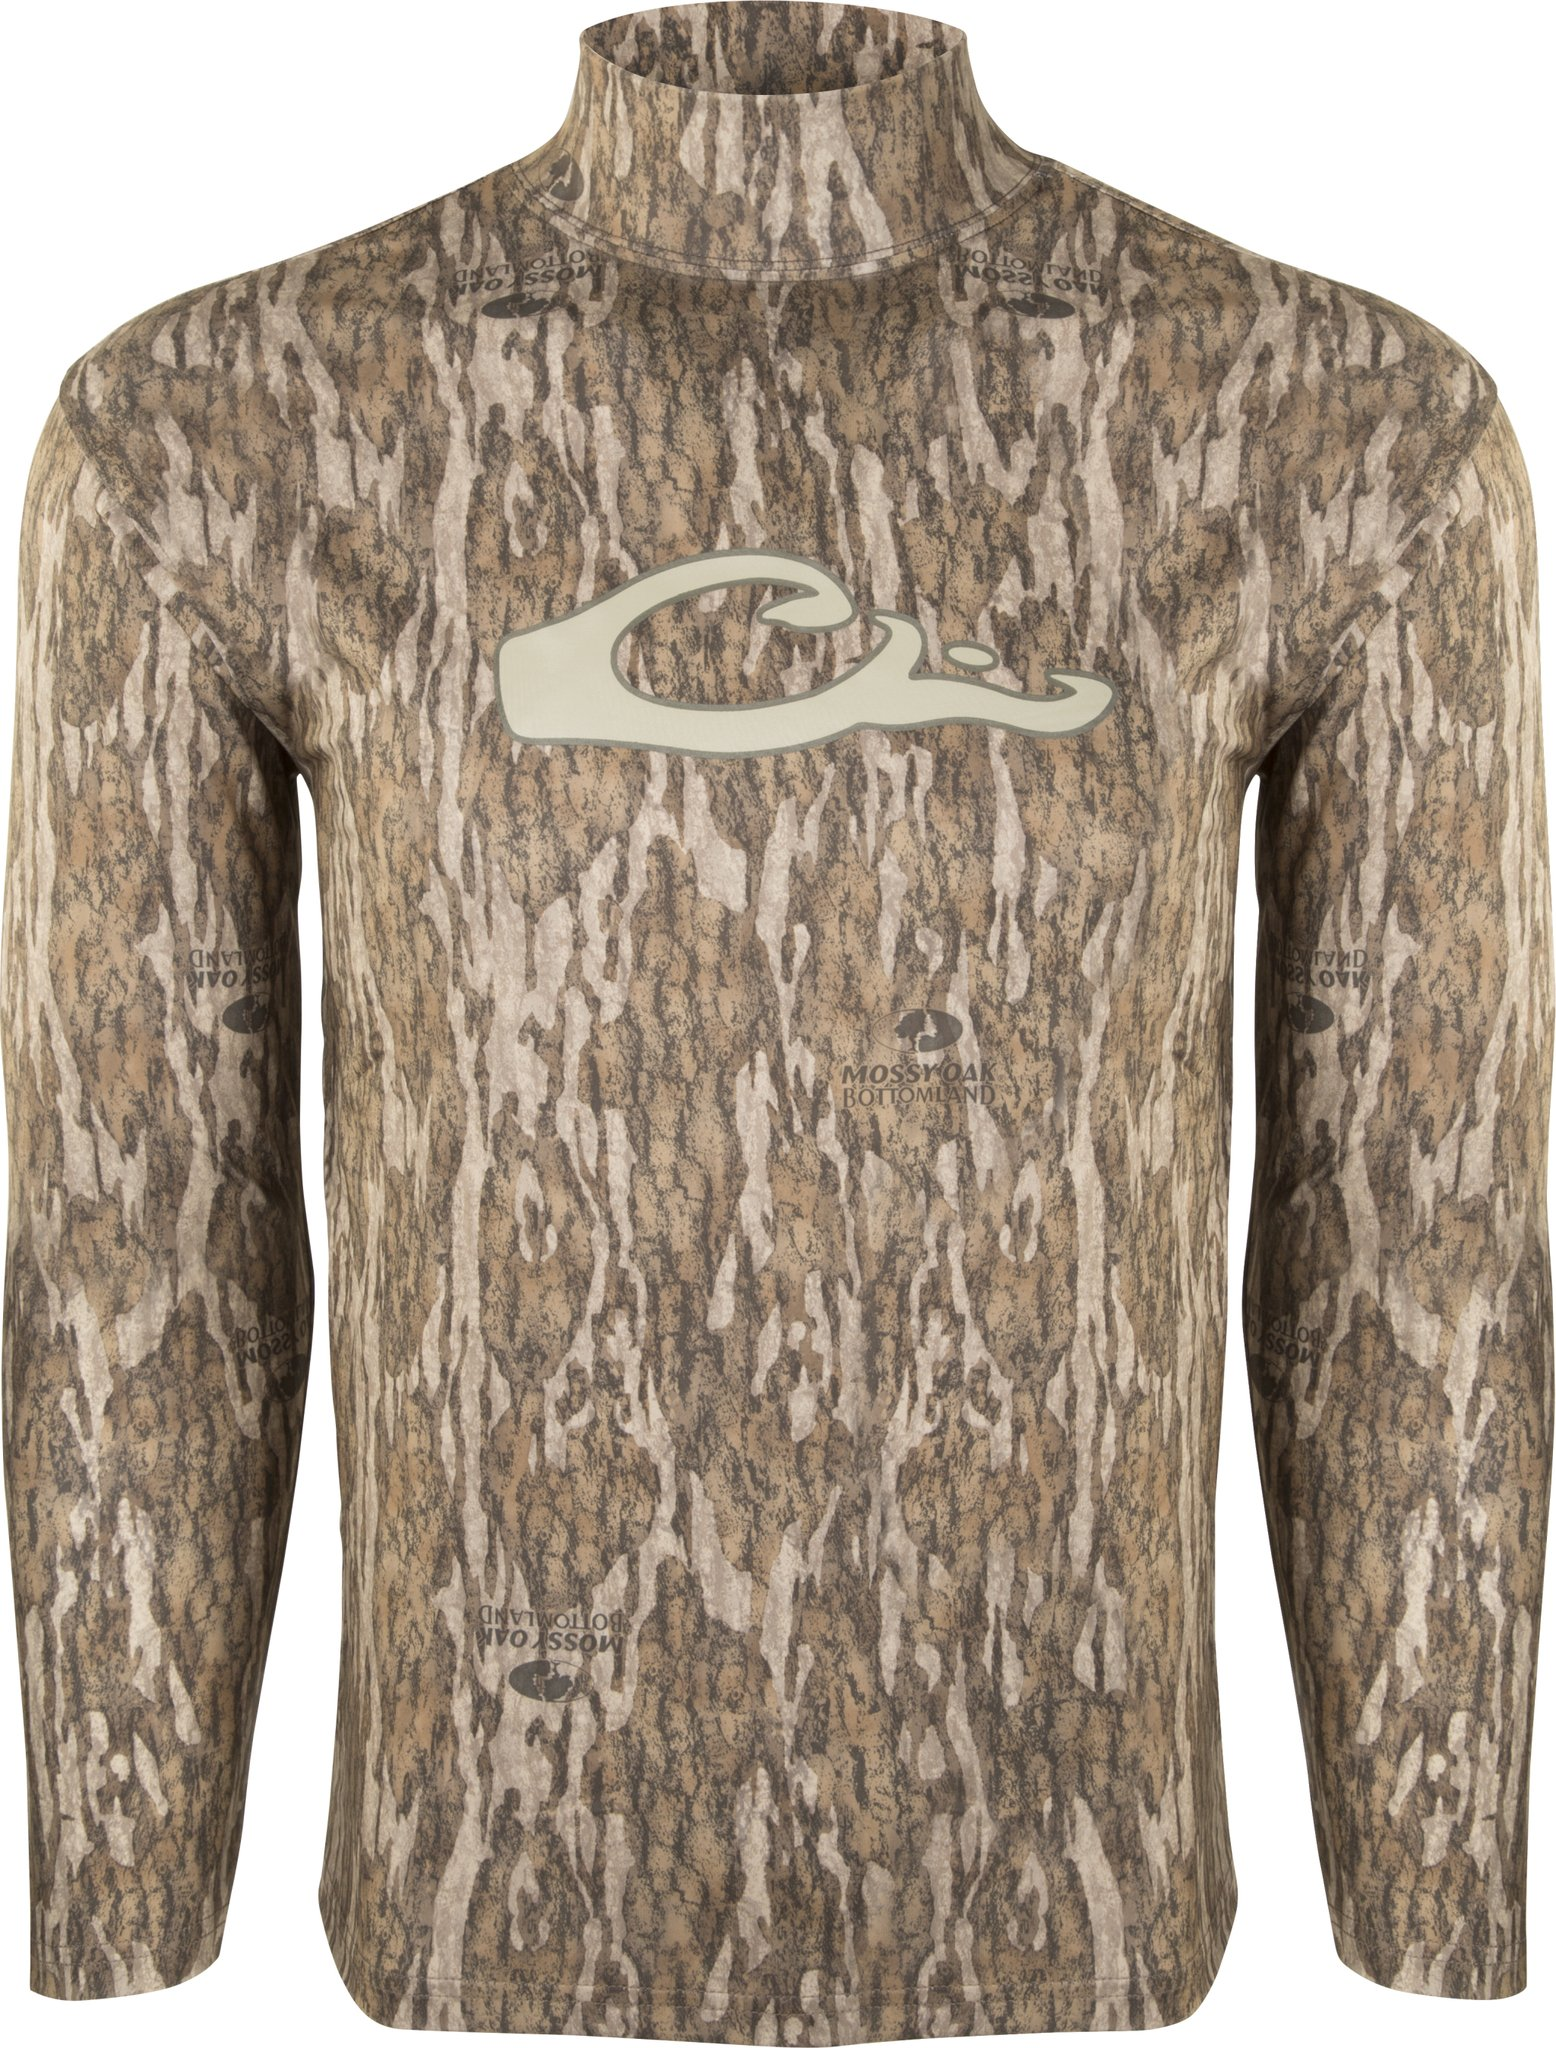 Drake Waterfowl Men's EST Performance Long Sleeve Top (Large, Mossy Oak Bottomland) by Drake